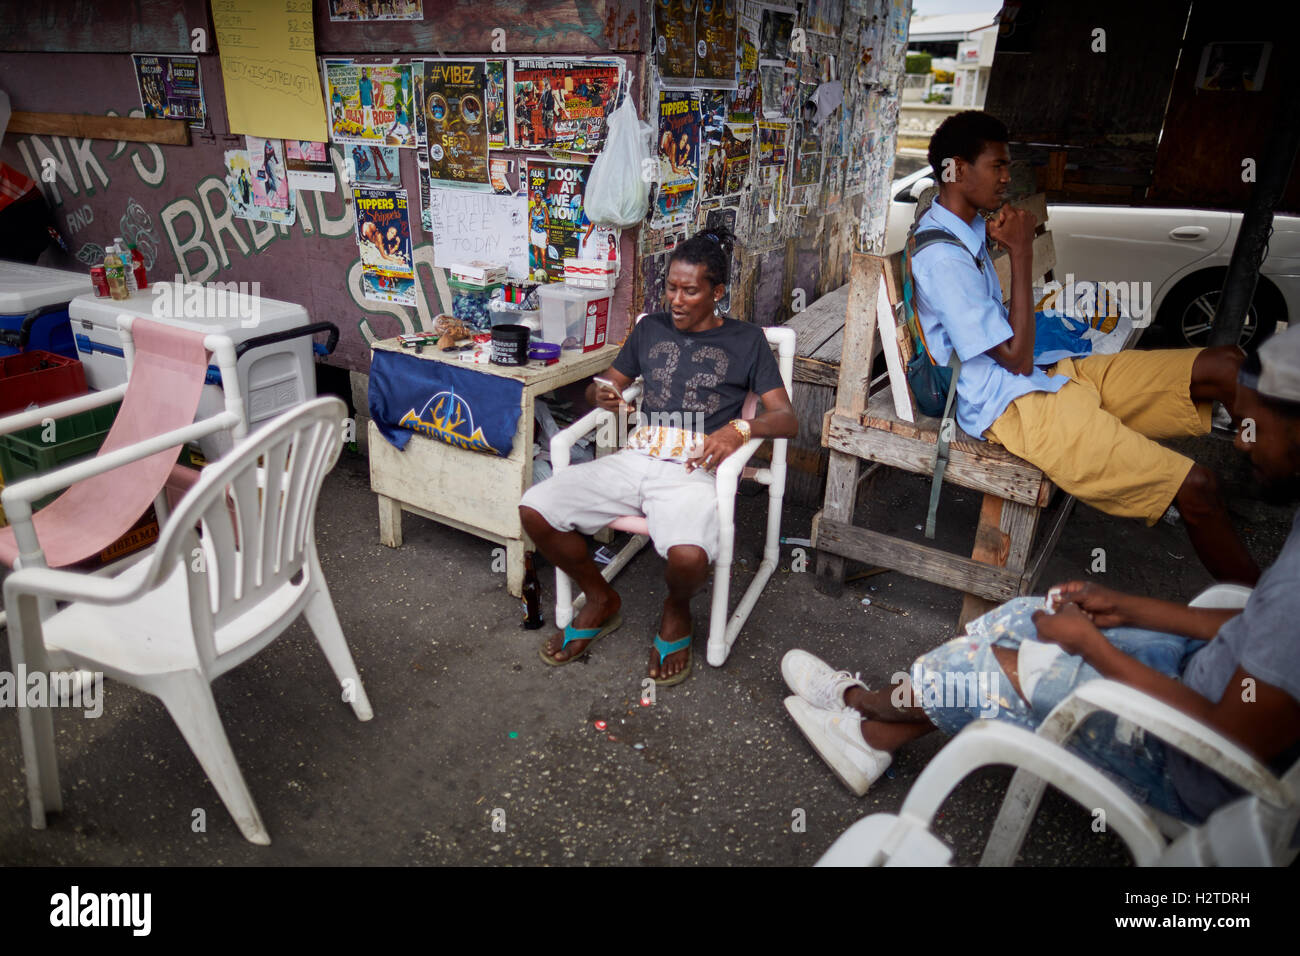 Barbados makes place businesses   Bridgetown Poor rundown rubbish scruffy deprived common poverty ghetto  un-kept - Stock Image